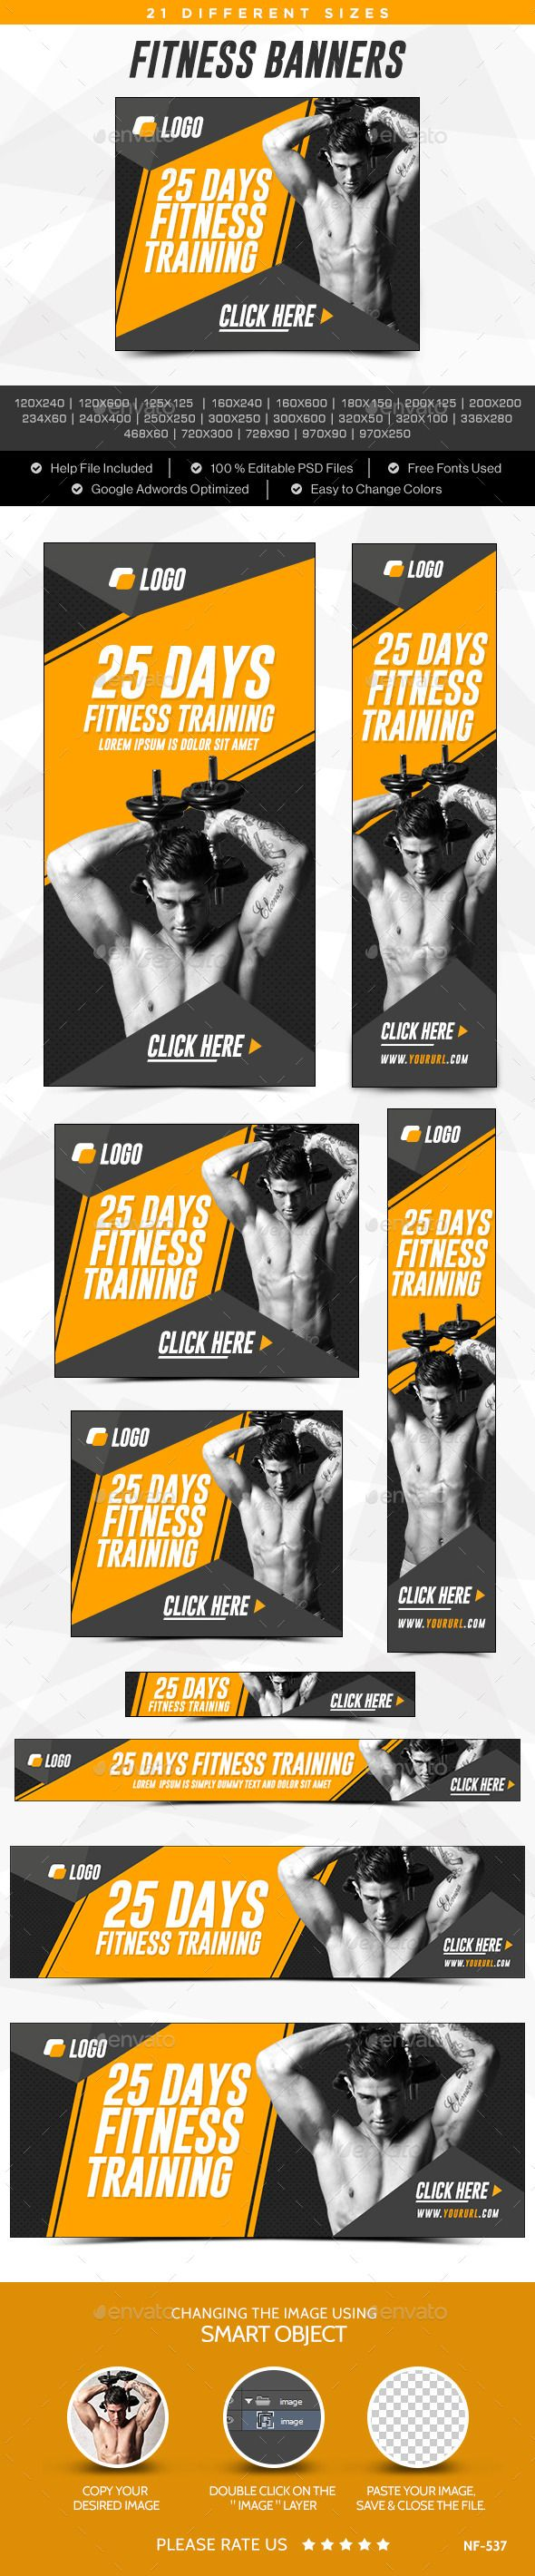 Fitness Banners Template #design Download: http://graphicriver.net/item/fitness-banners/12297869?ref=ksioks